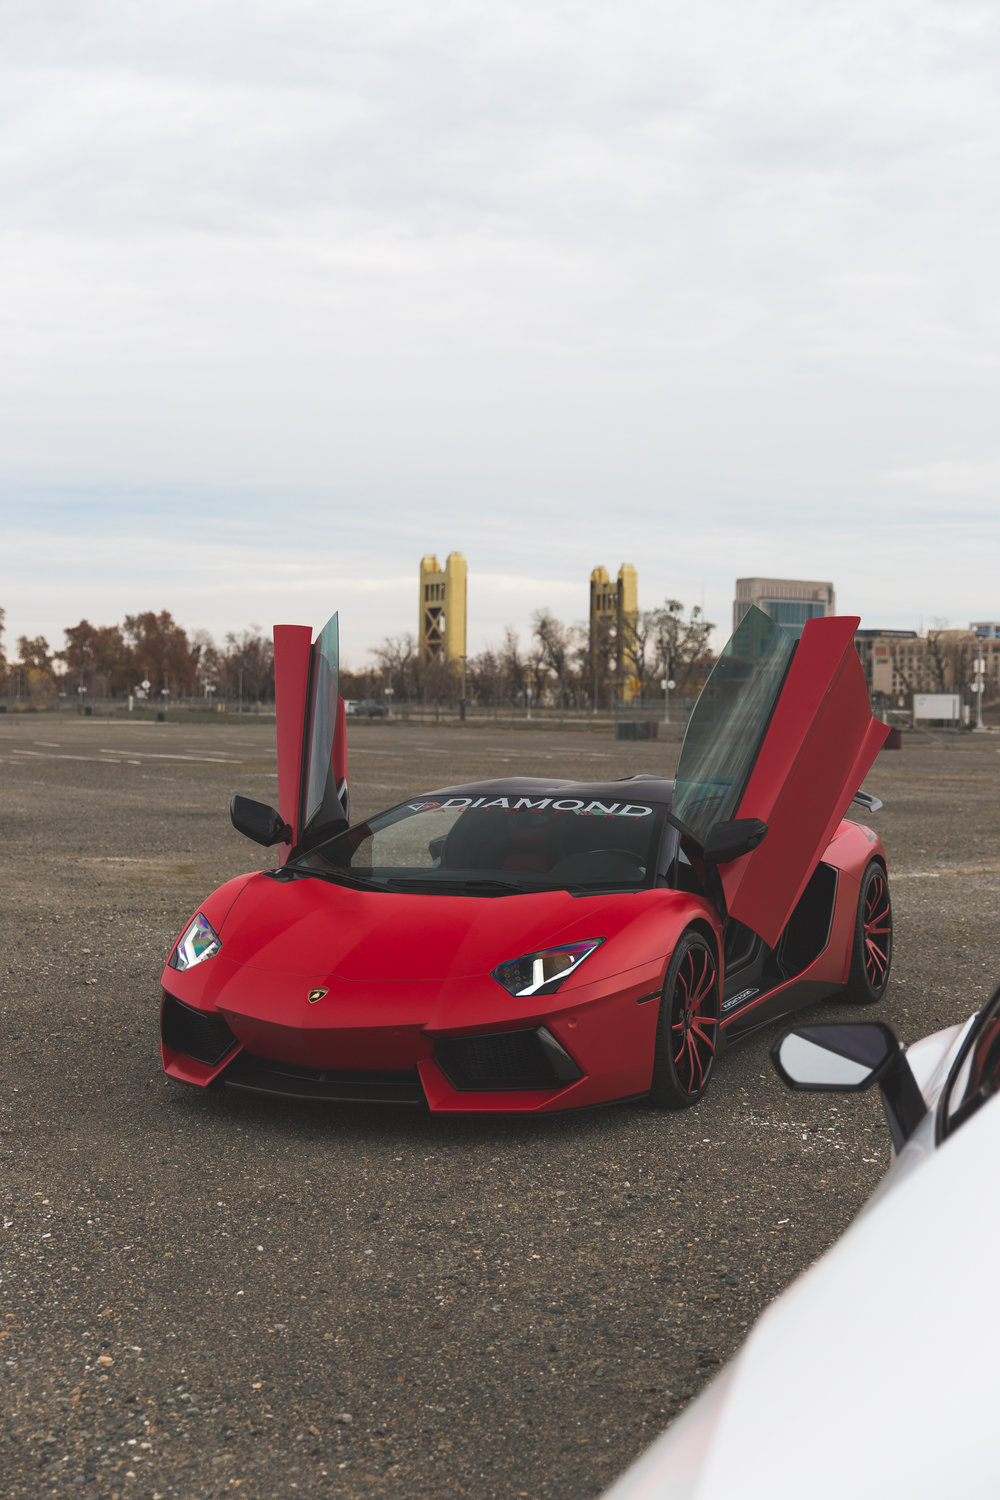 Stay_Driven_Sacramento_Lambos-3.jpg